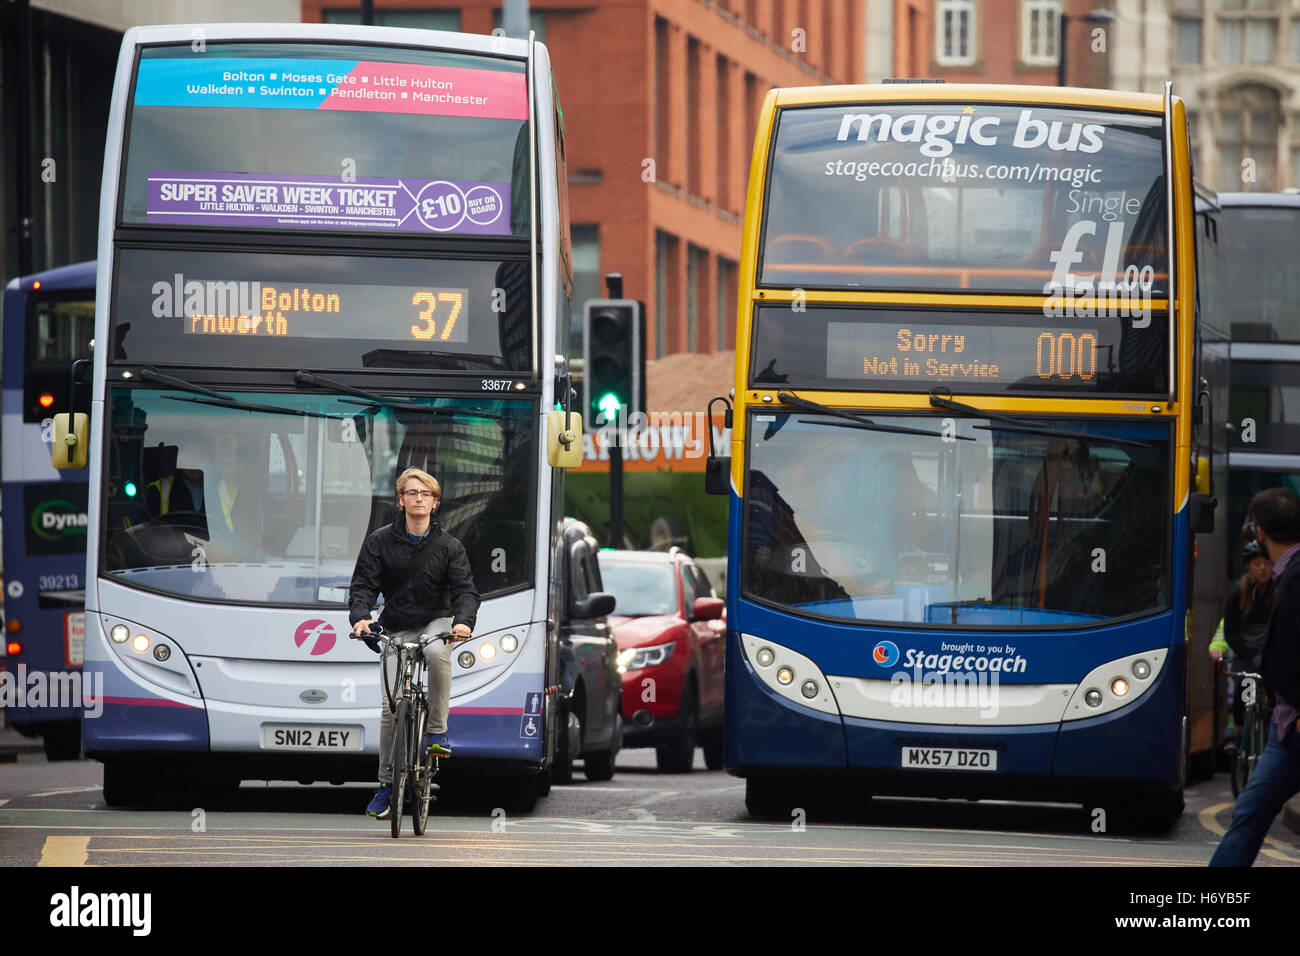 Manchester cyclist stopped at lights bike  First Stagecoach Magic bus buses competition privatised not in service - Stock Image